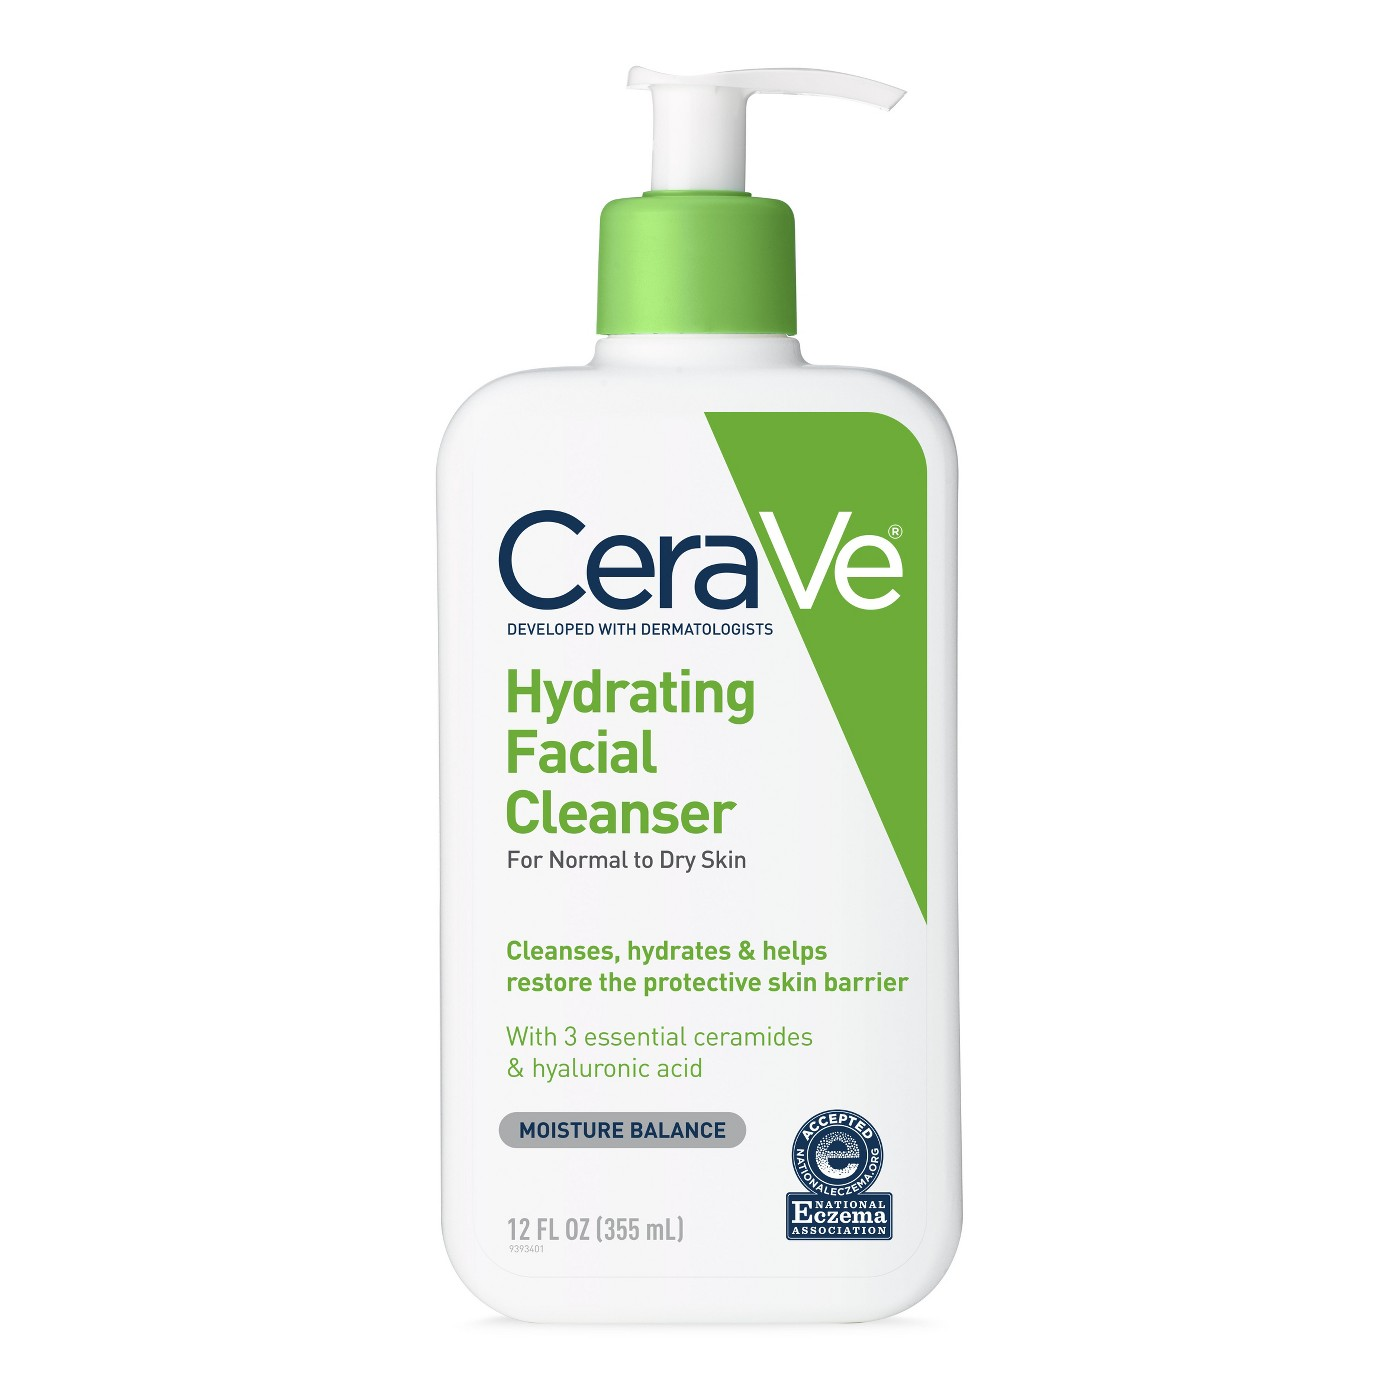 CeraVe Hydrating Facial Cleanser ($11)